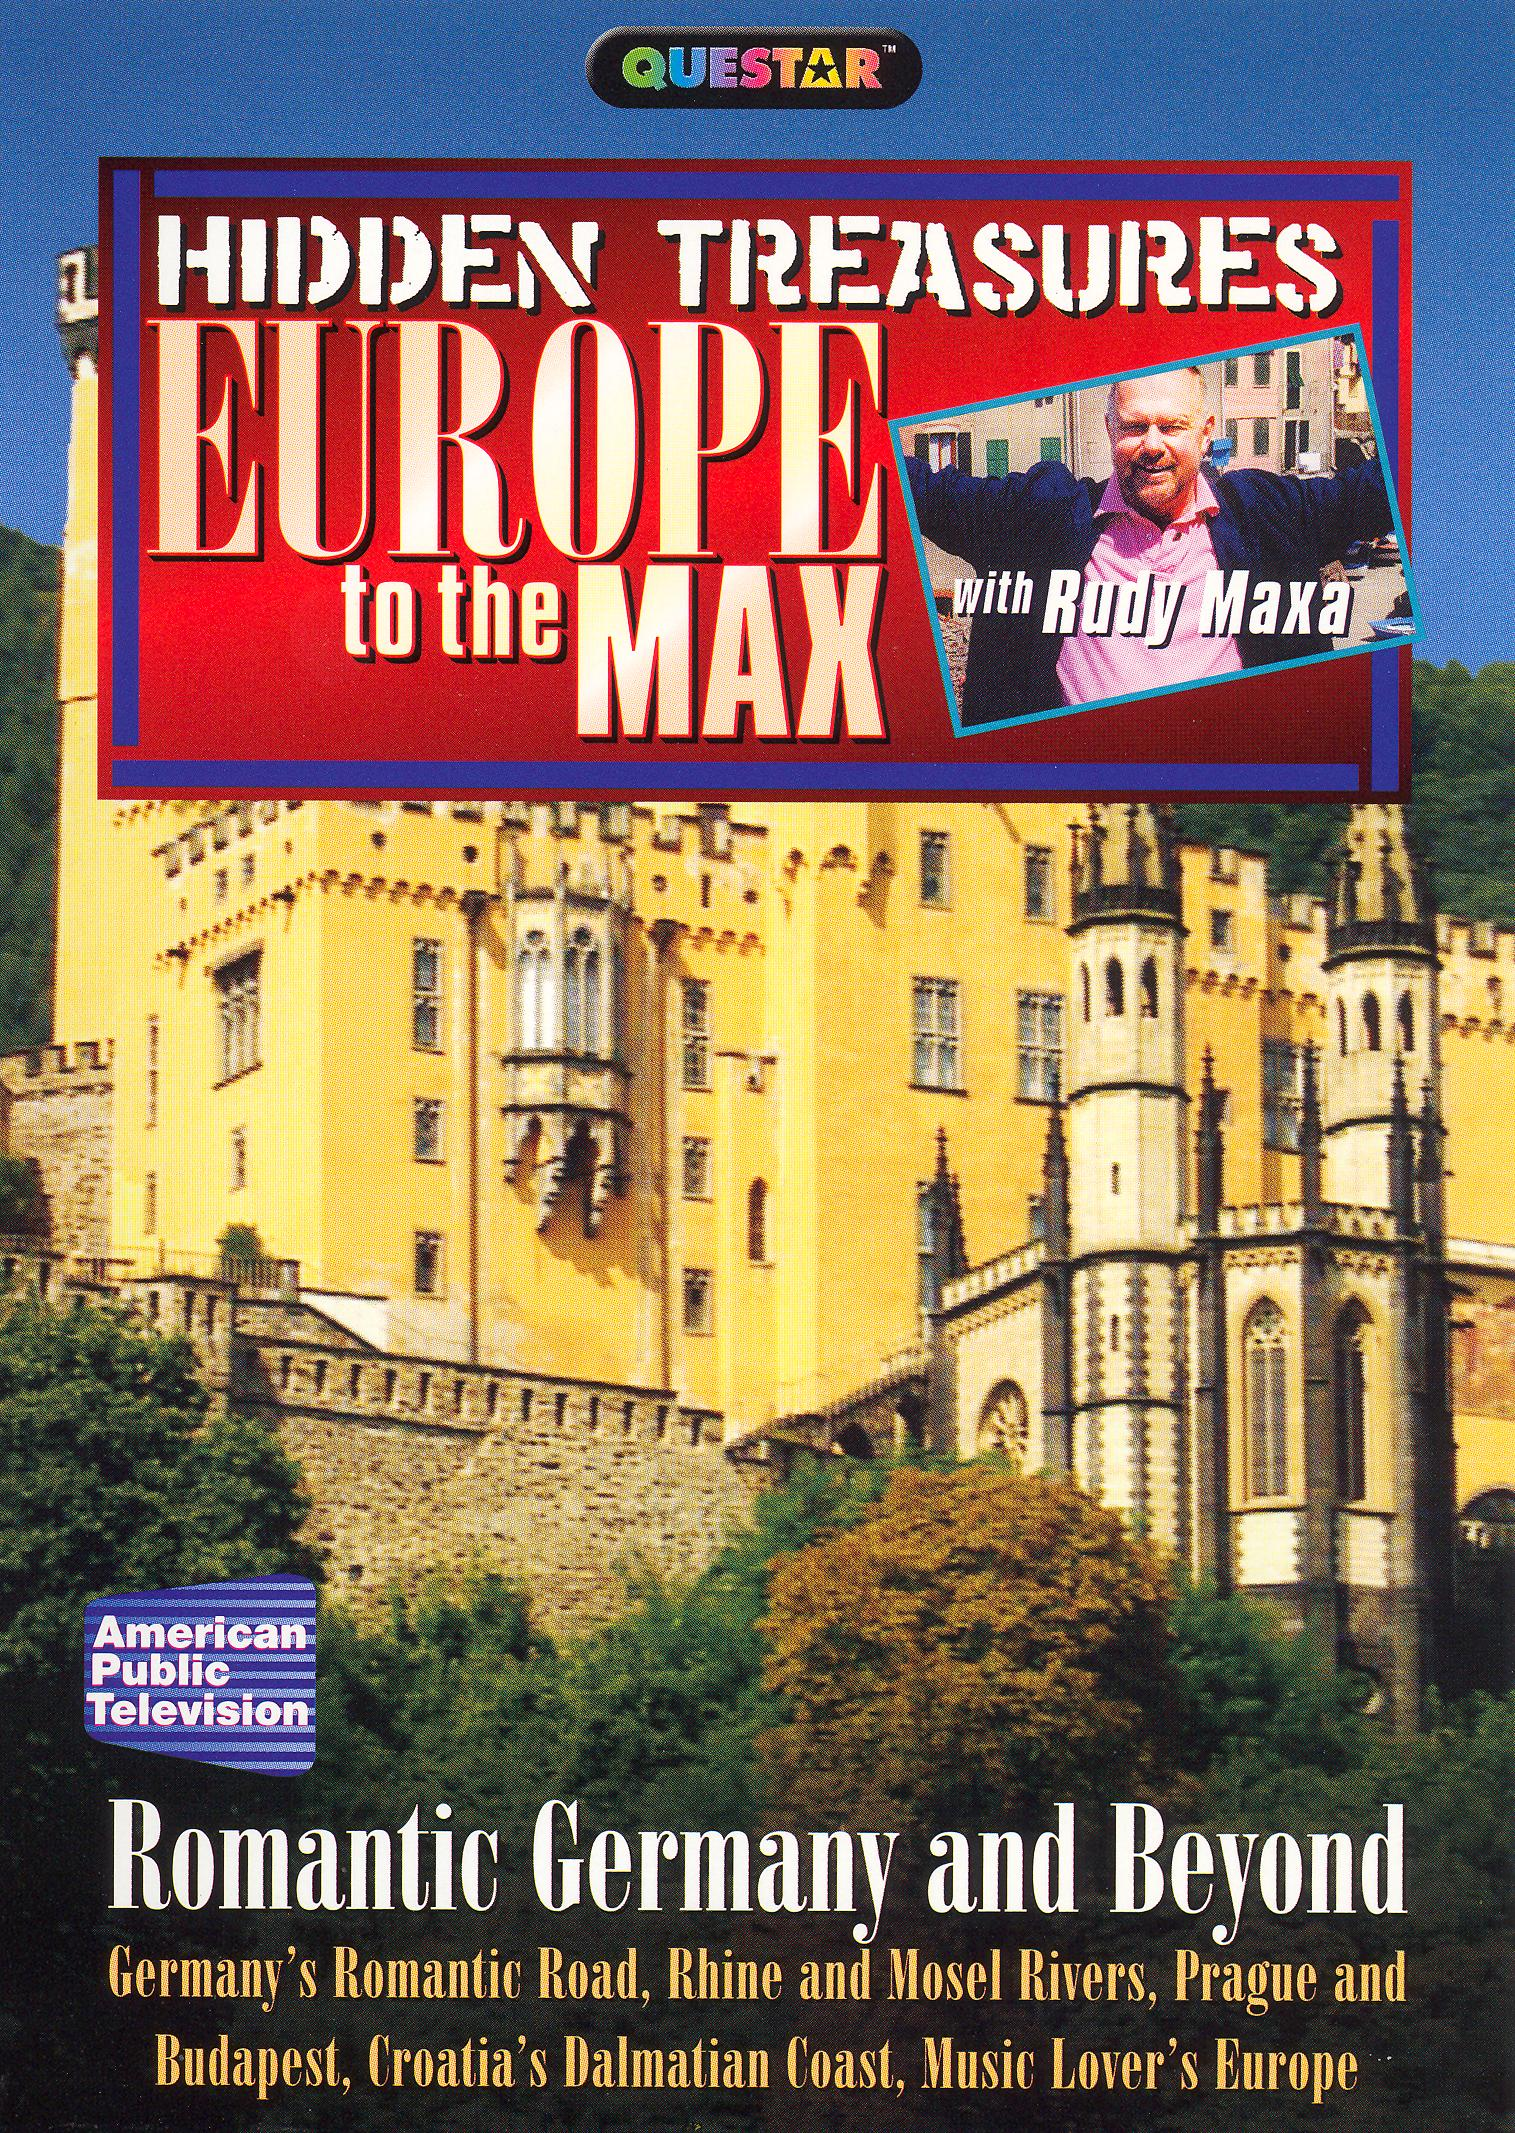 Rudy Maxa: Europe to the Max: Hidden Treasures - Romantic Germany and Beyond